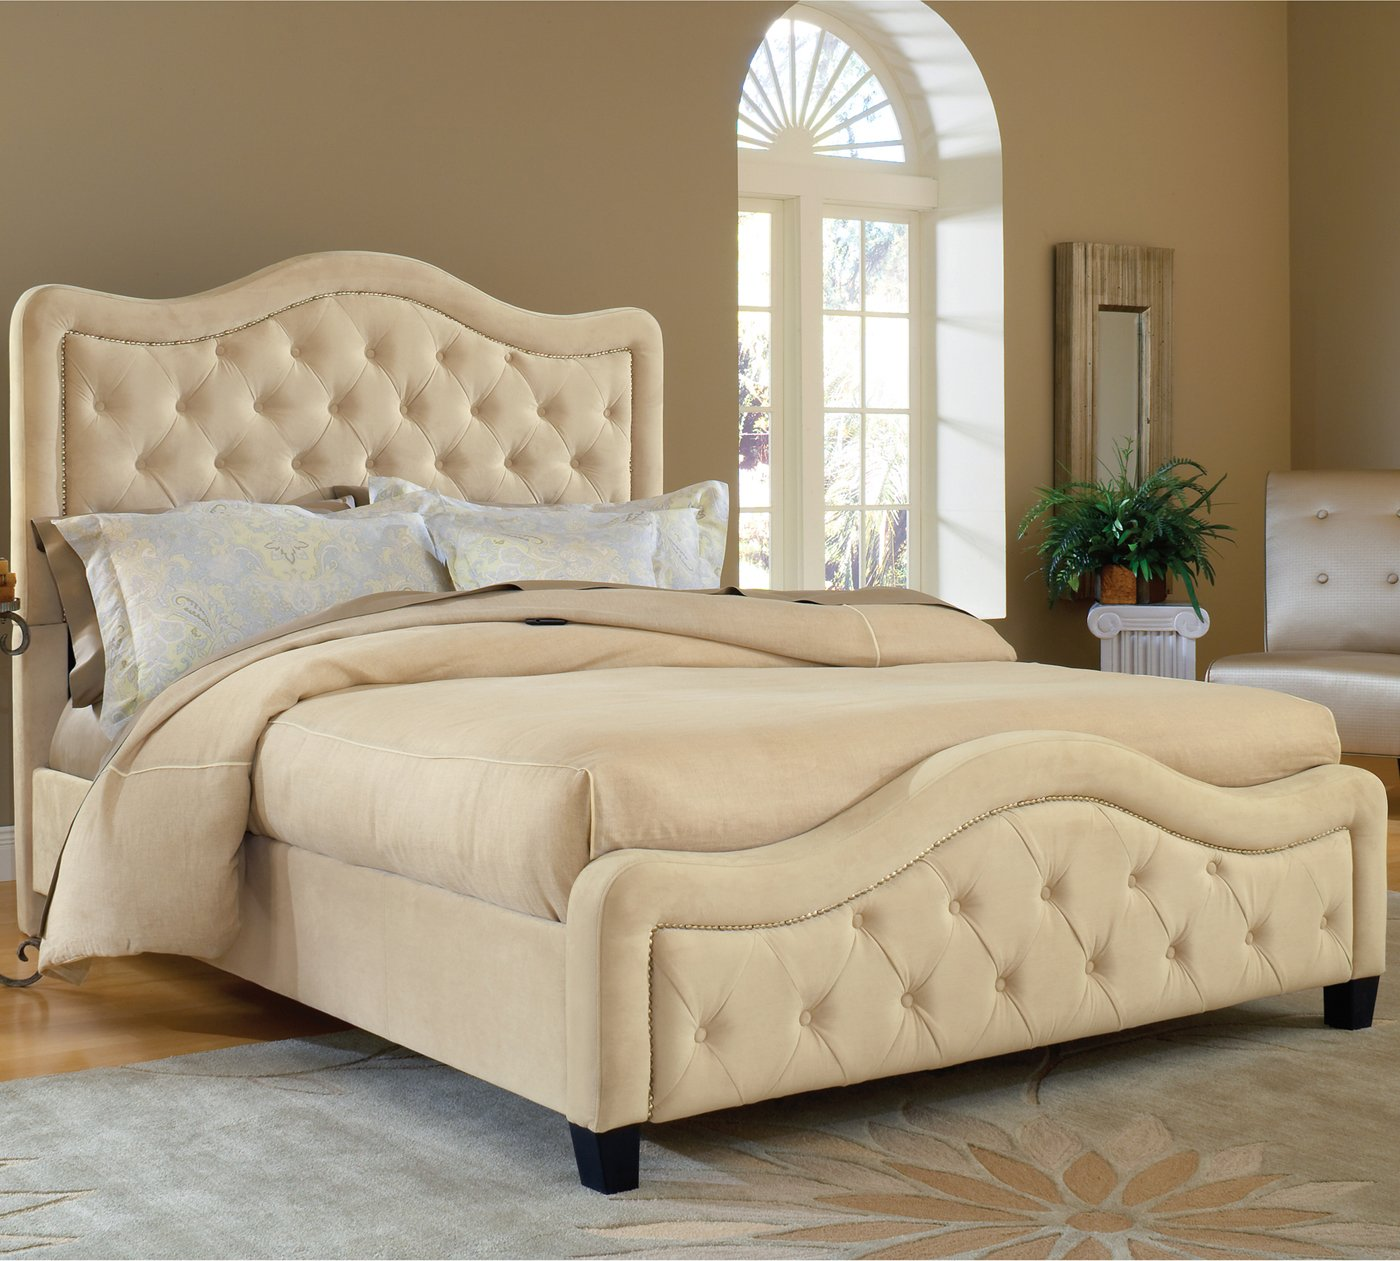 Amazon.com: Hillsdale Furniture 1638BQRT Trieste Bed Set with ...